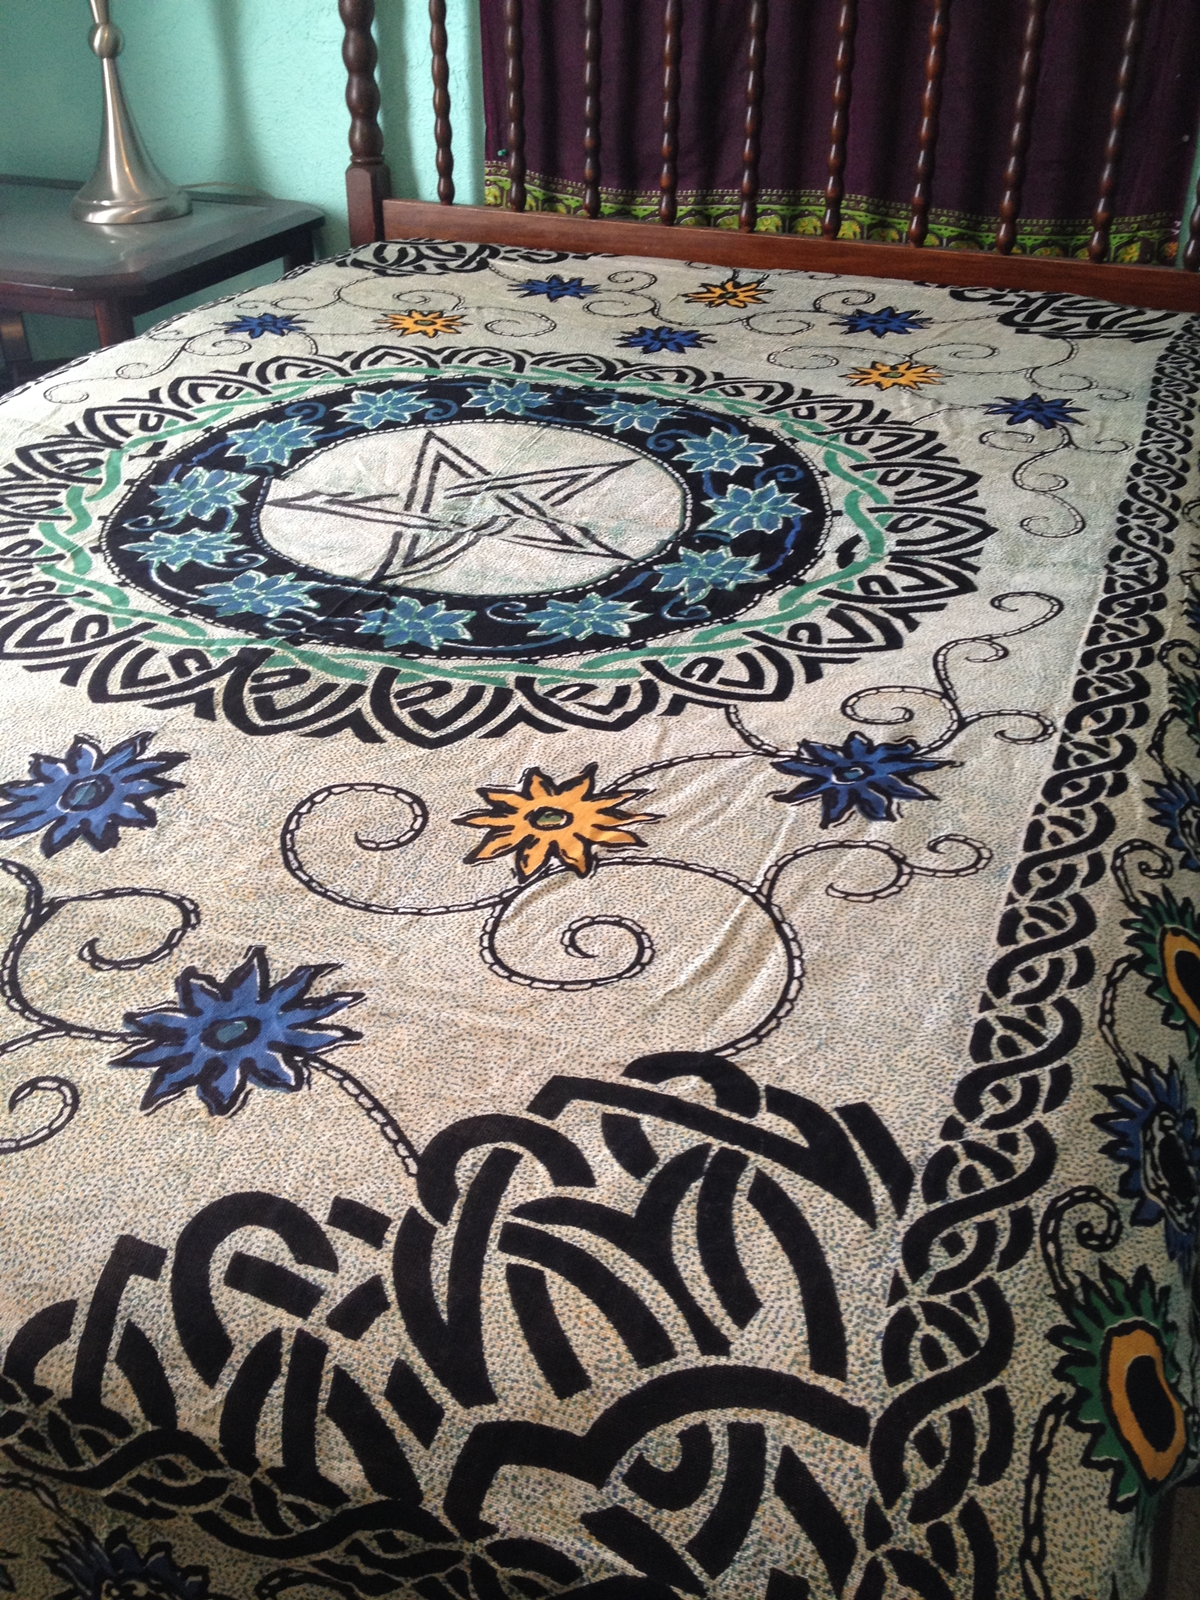 Pentacle Pentagram Floral Flowers Celtic Wicca Altar Cloth